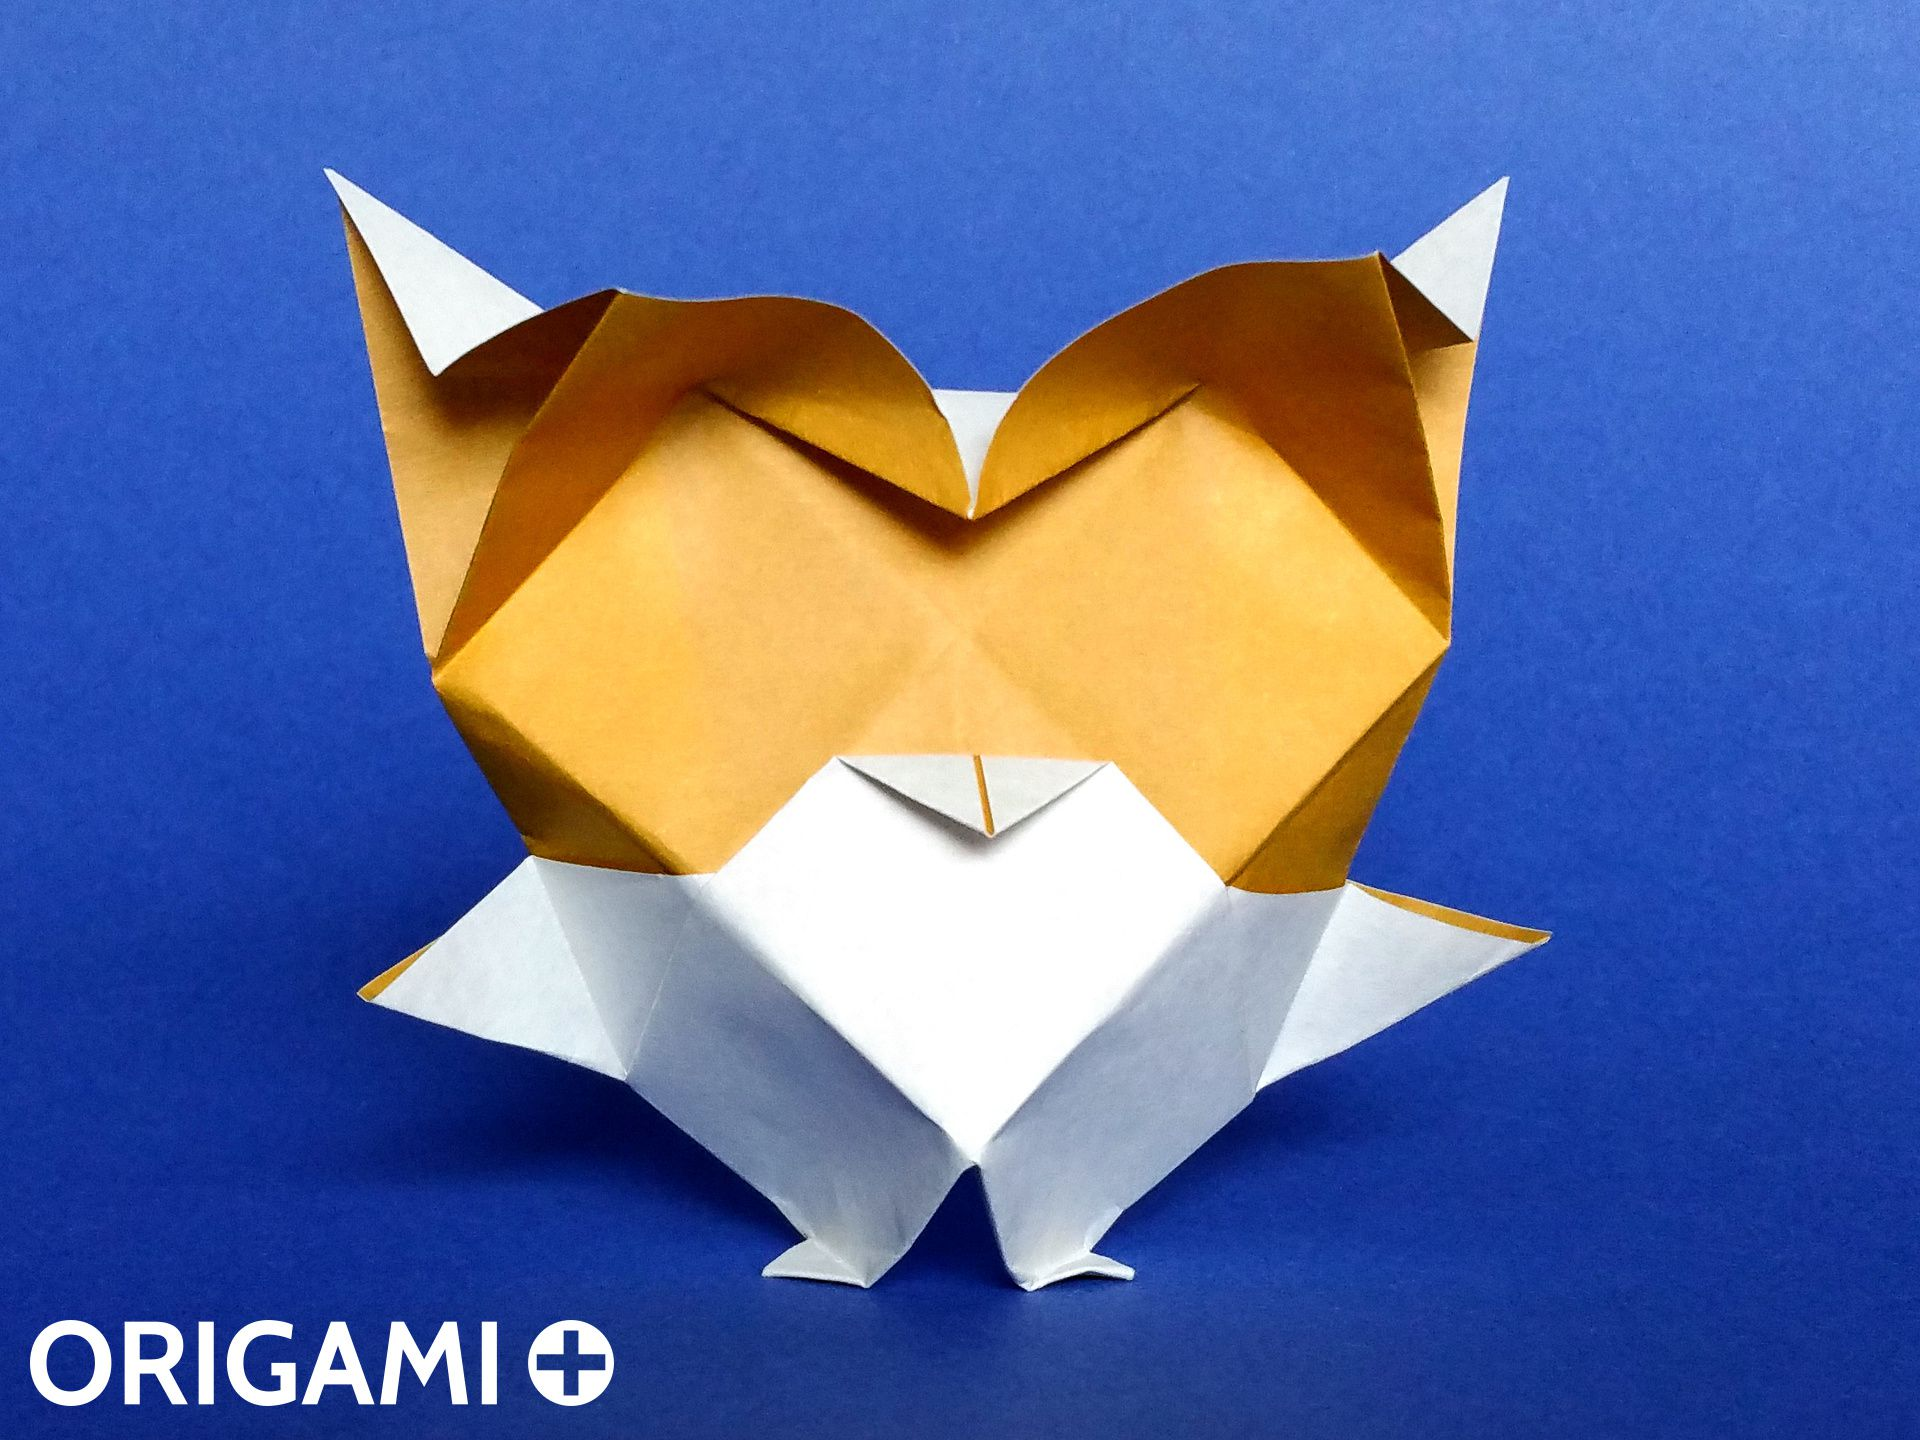 Origami models with photos and videos - photo#20